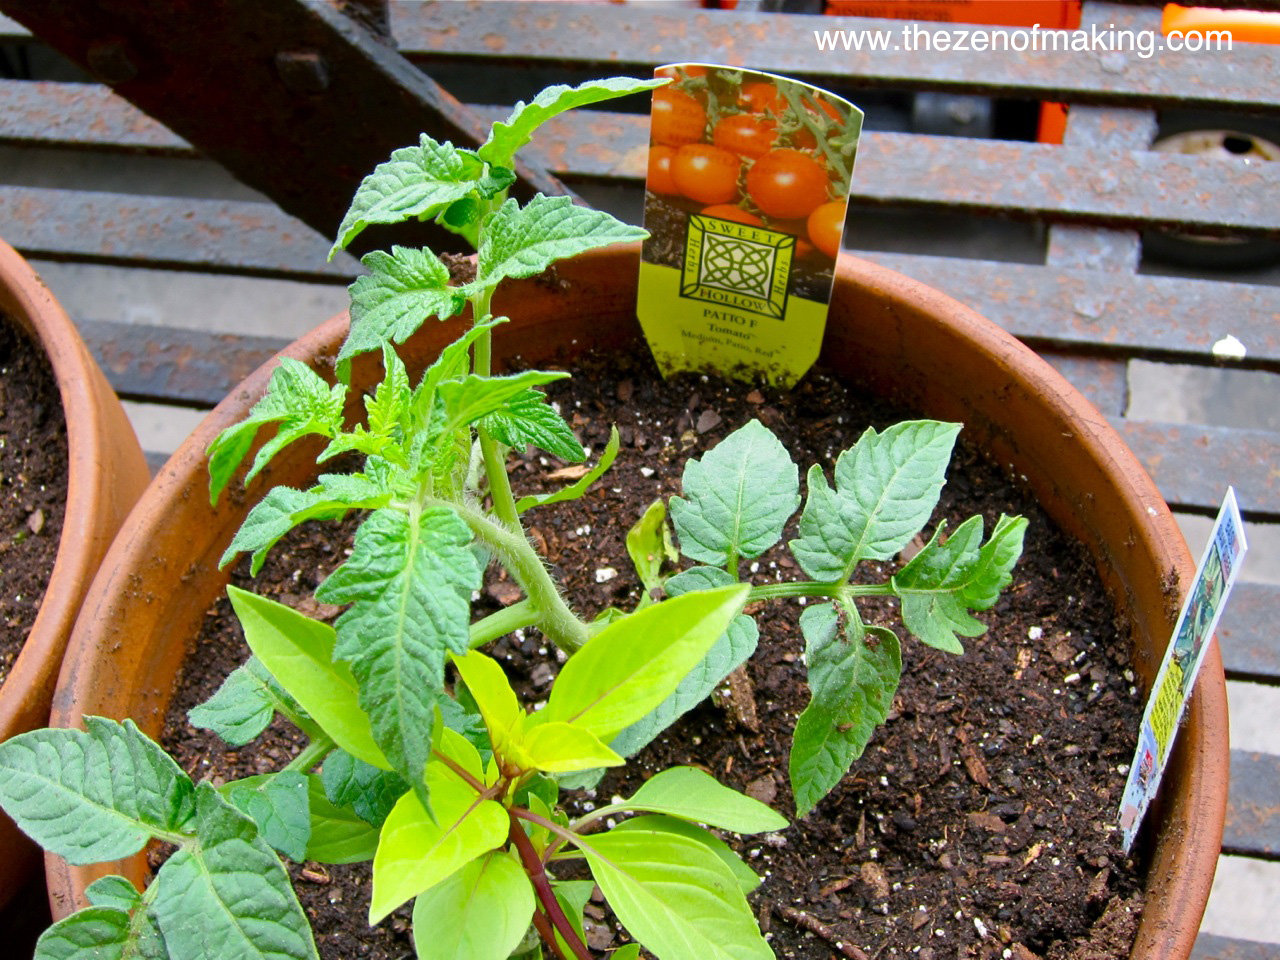 5 Tips for Successful Fire Escape and Container Gardening